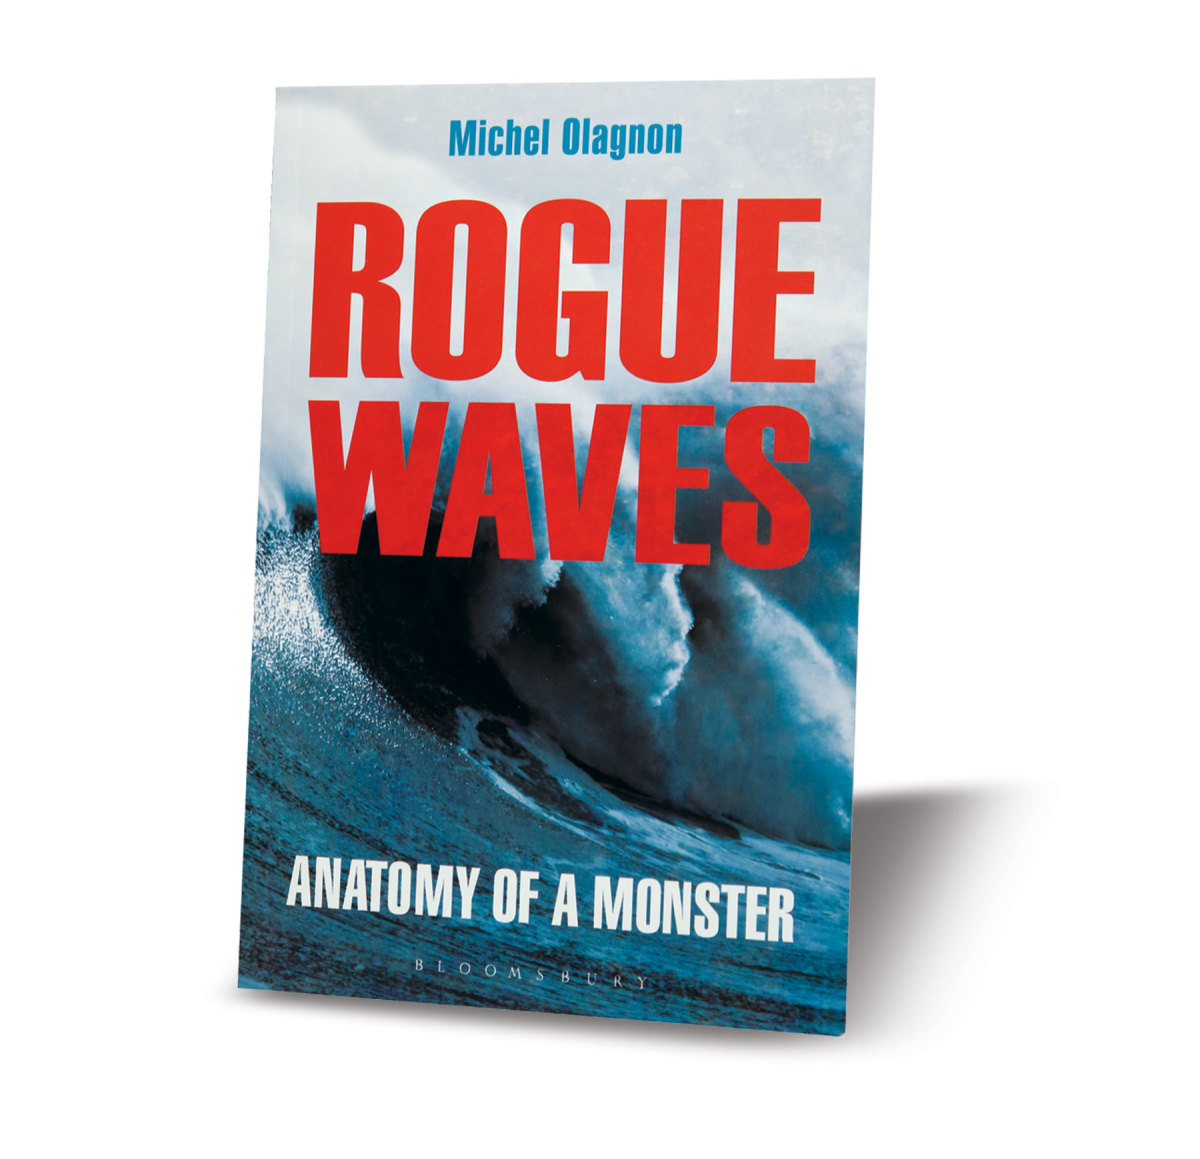 Photo of Rogue Waves book cover